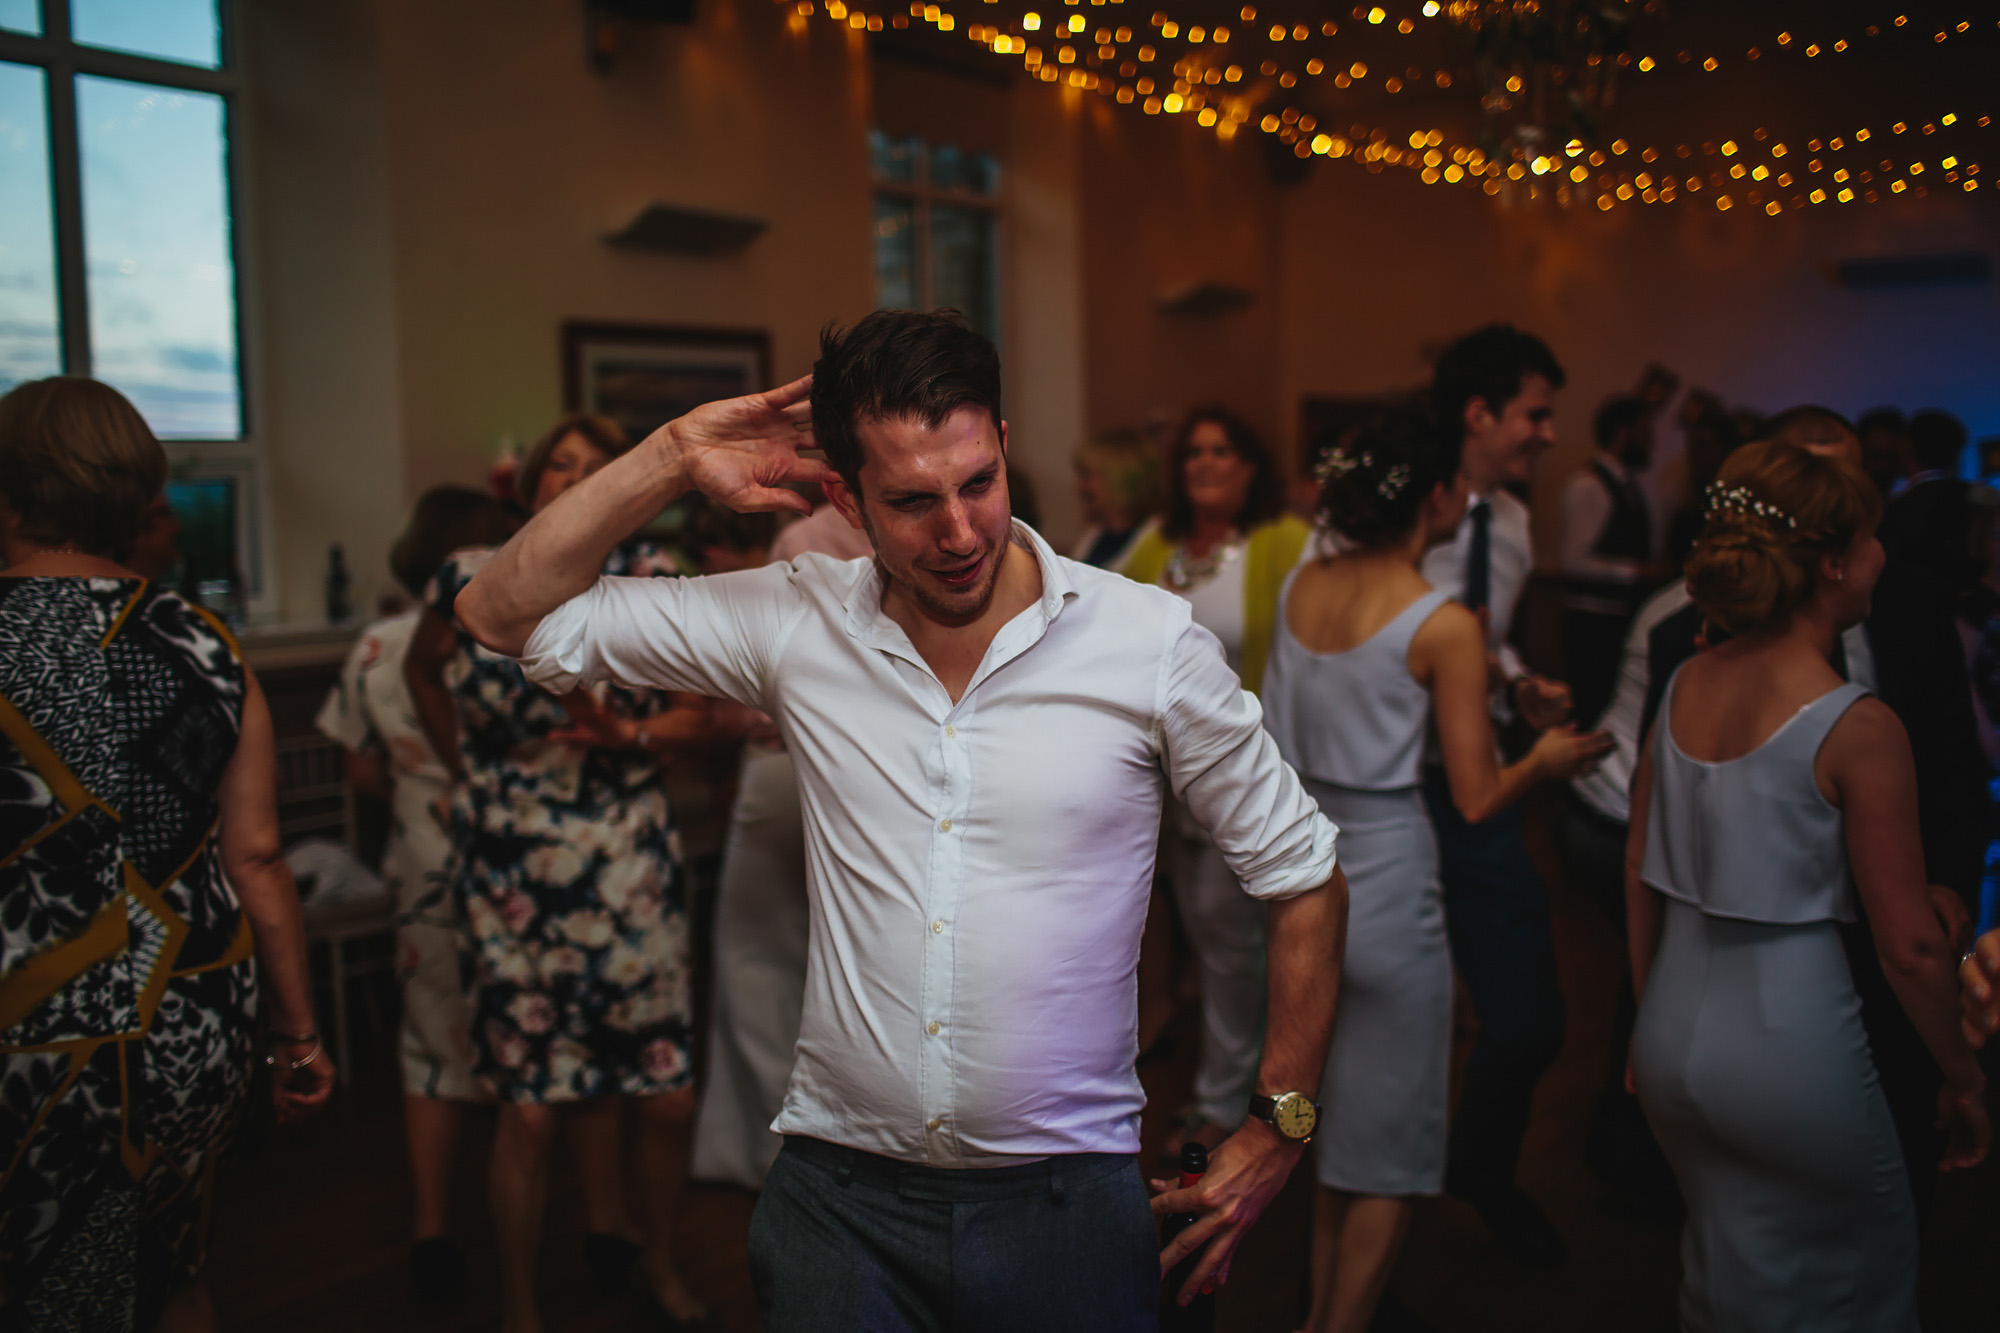 Sweaty man dances at a wedding and its funny